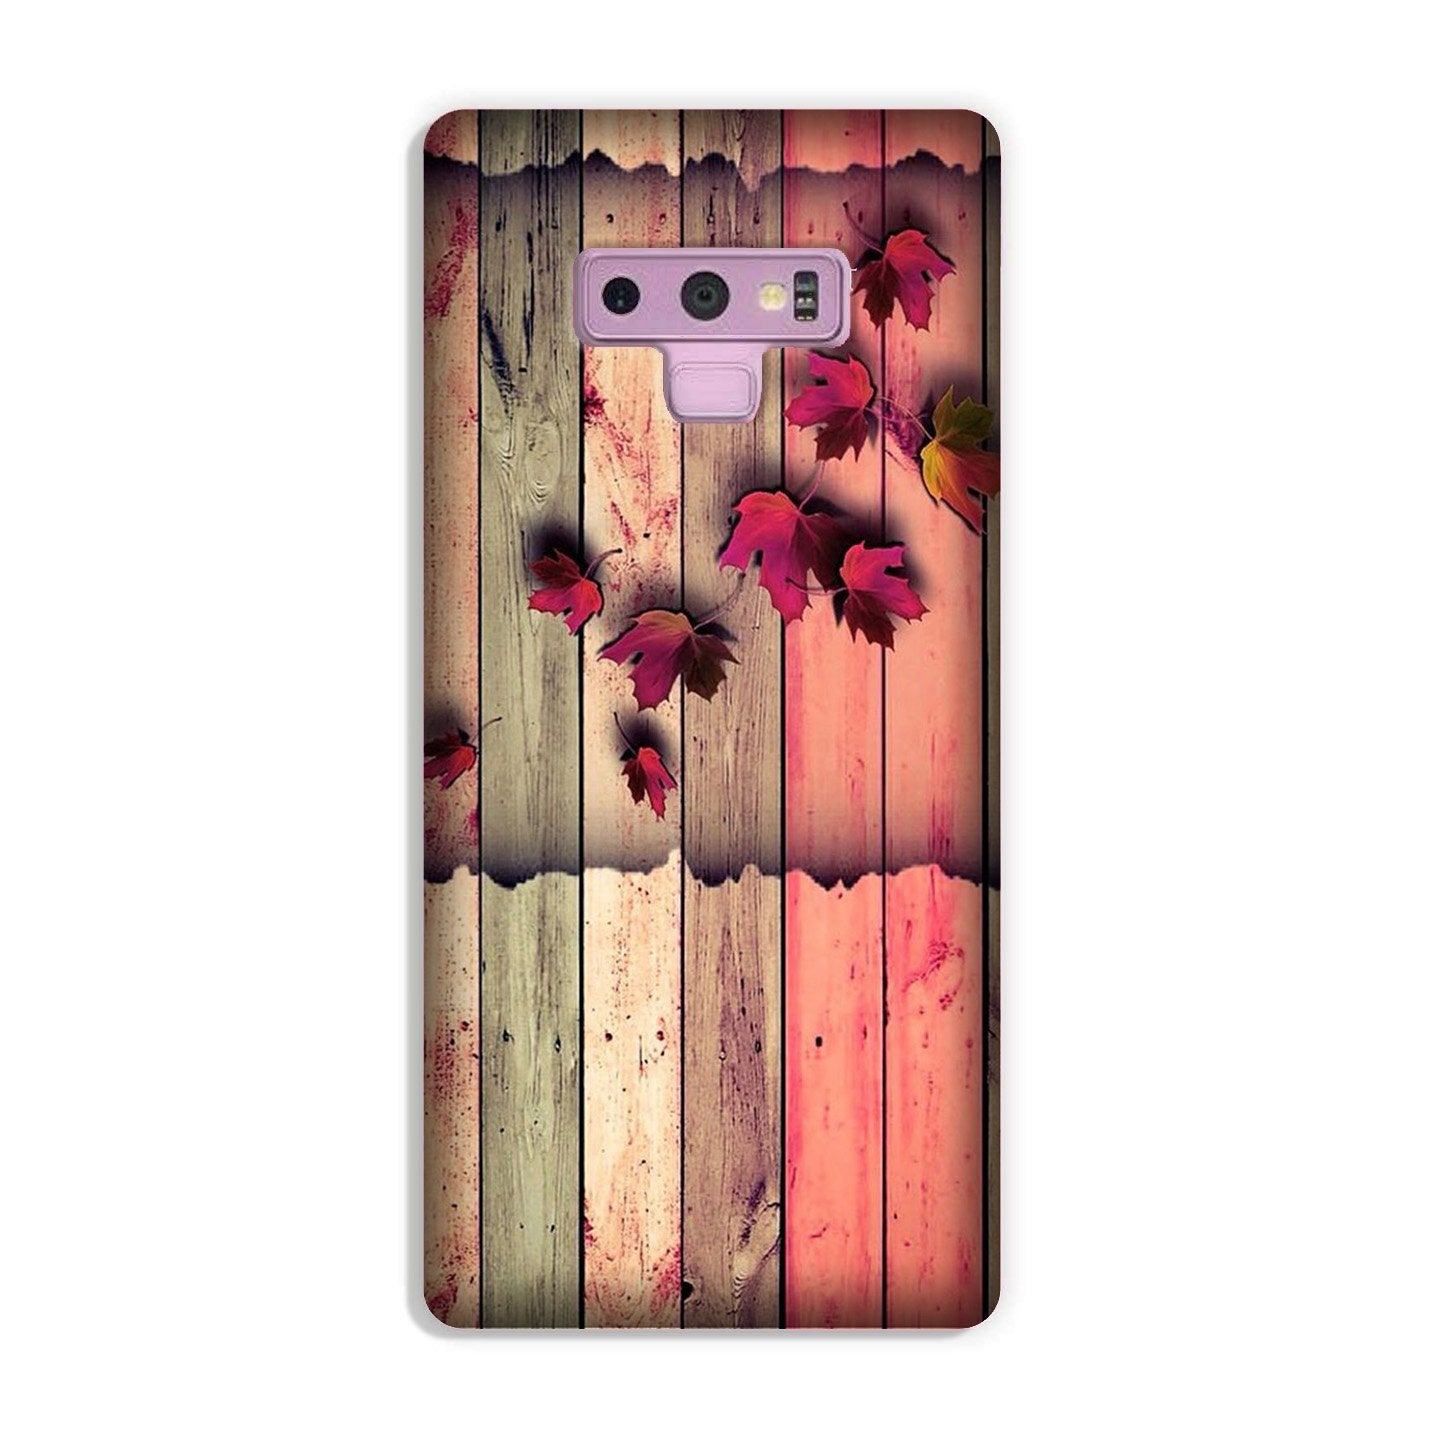 Wooden look2 Case for Galaxy Note 9